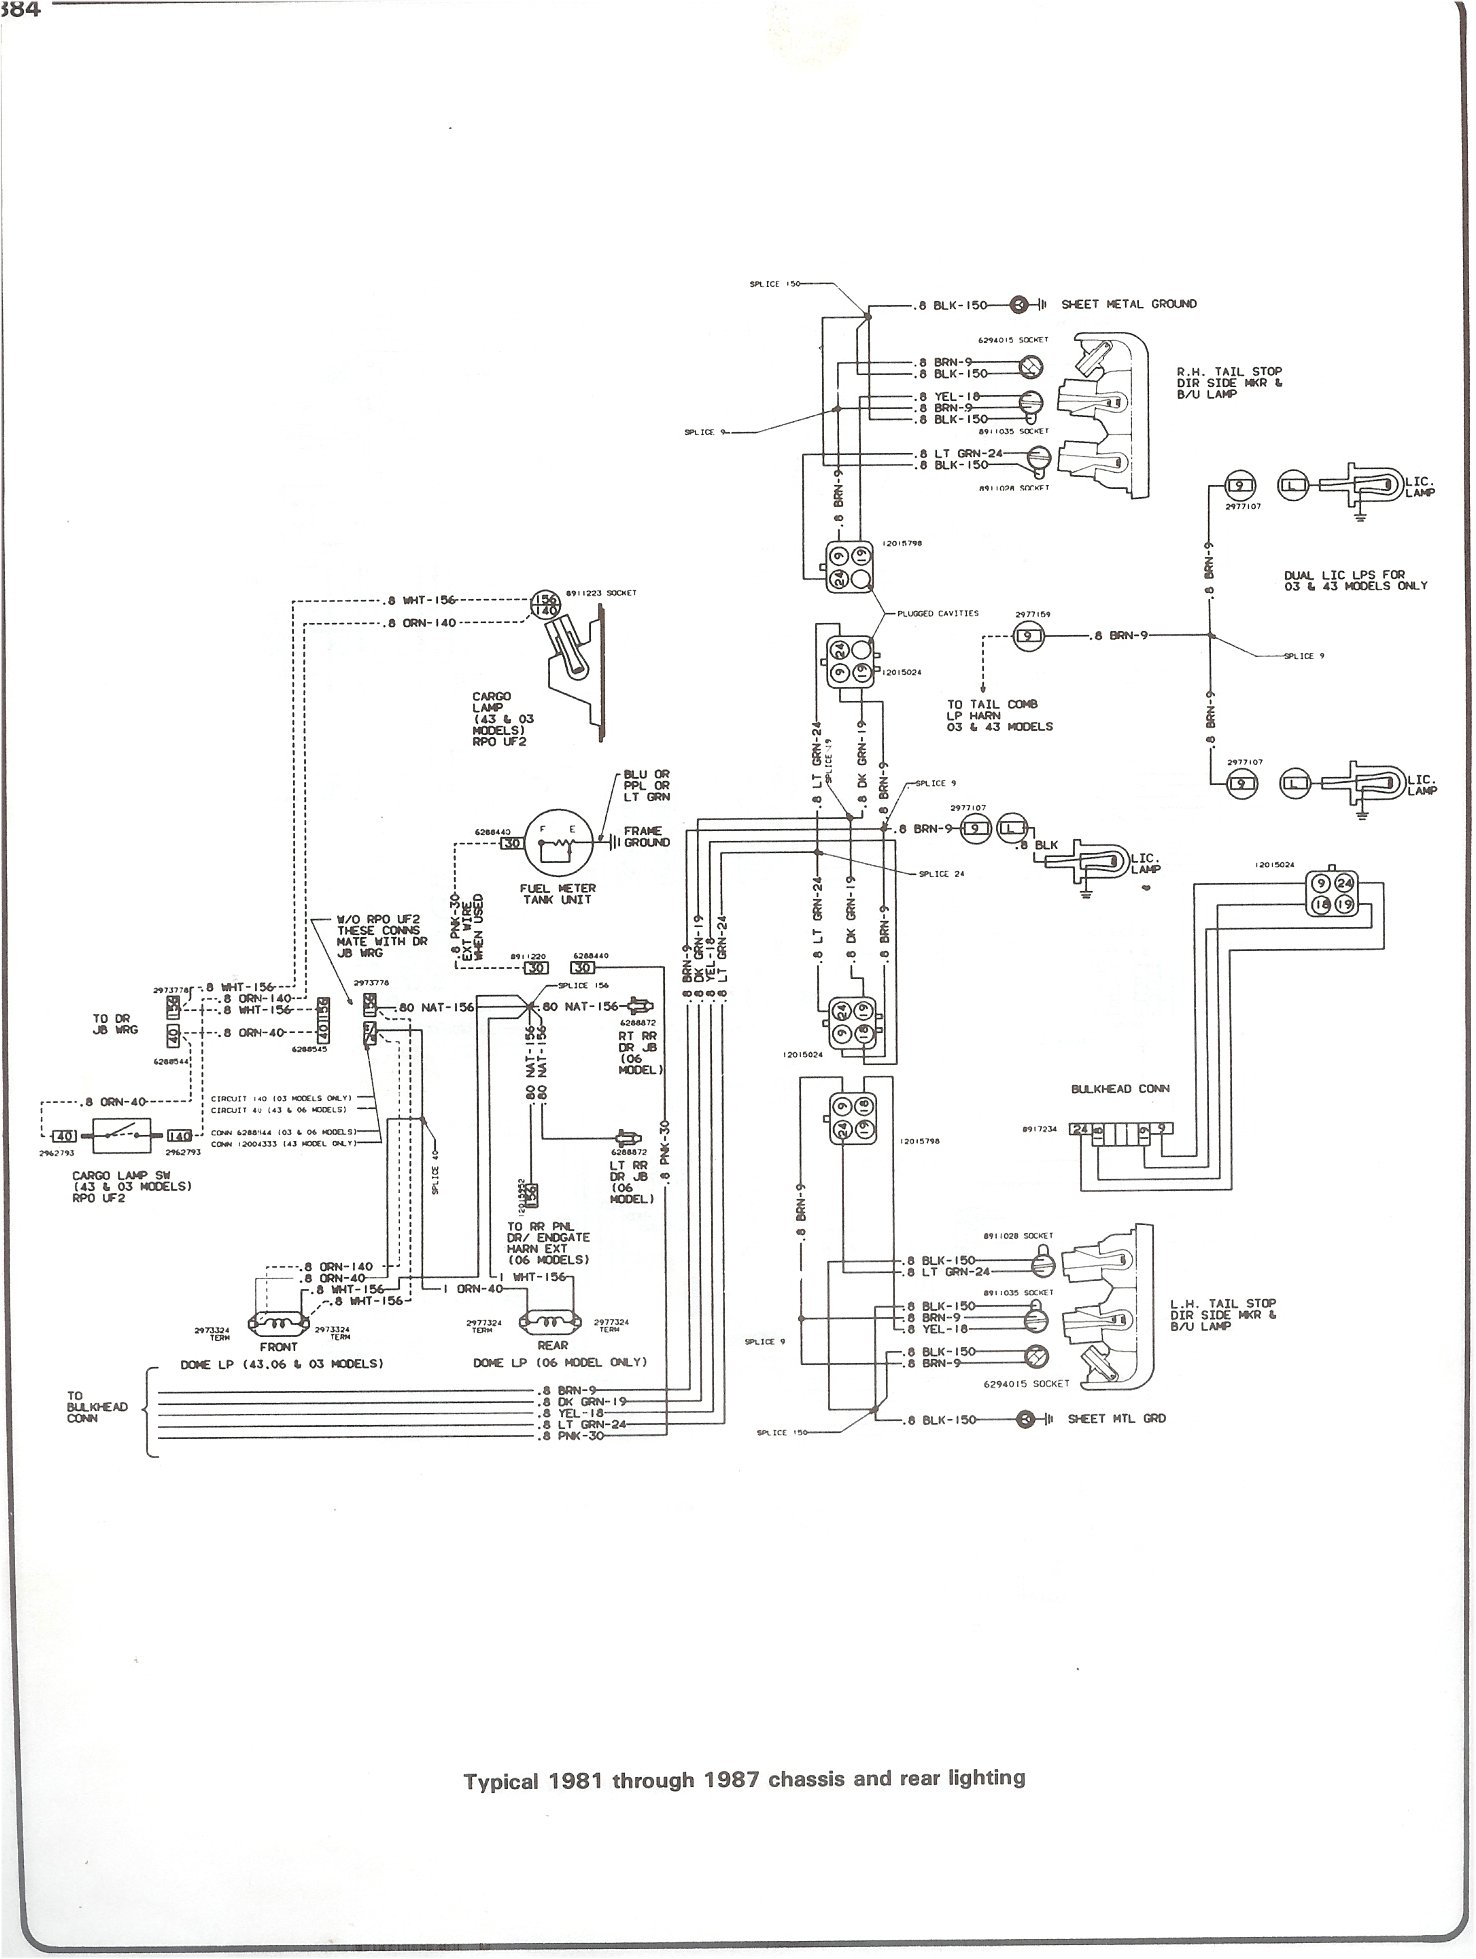 86 chevrolet truck fuse diagram schematics wiring diagrams u2022 rh  parntesis co Looking for a 86